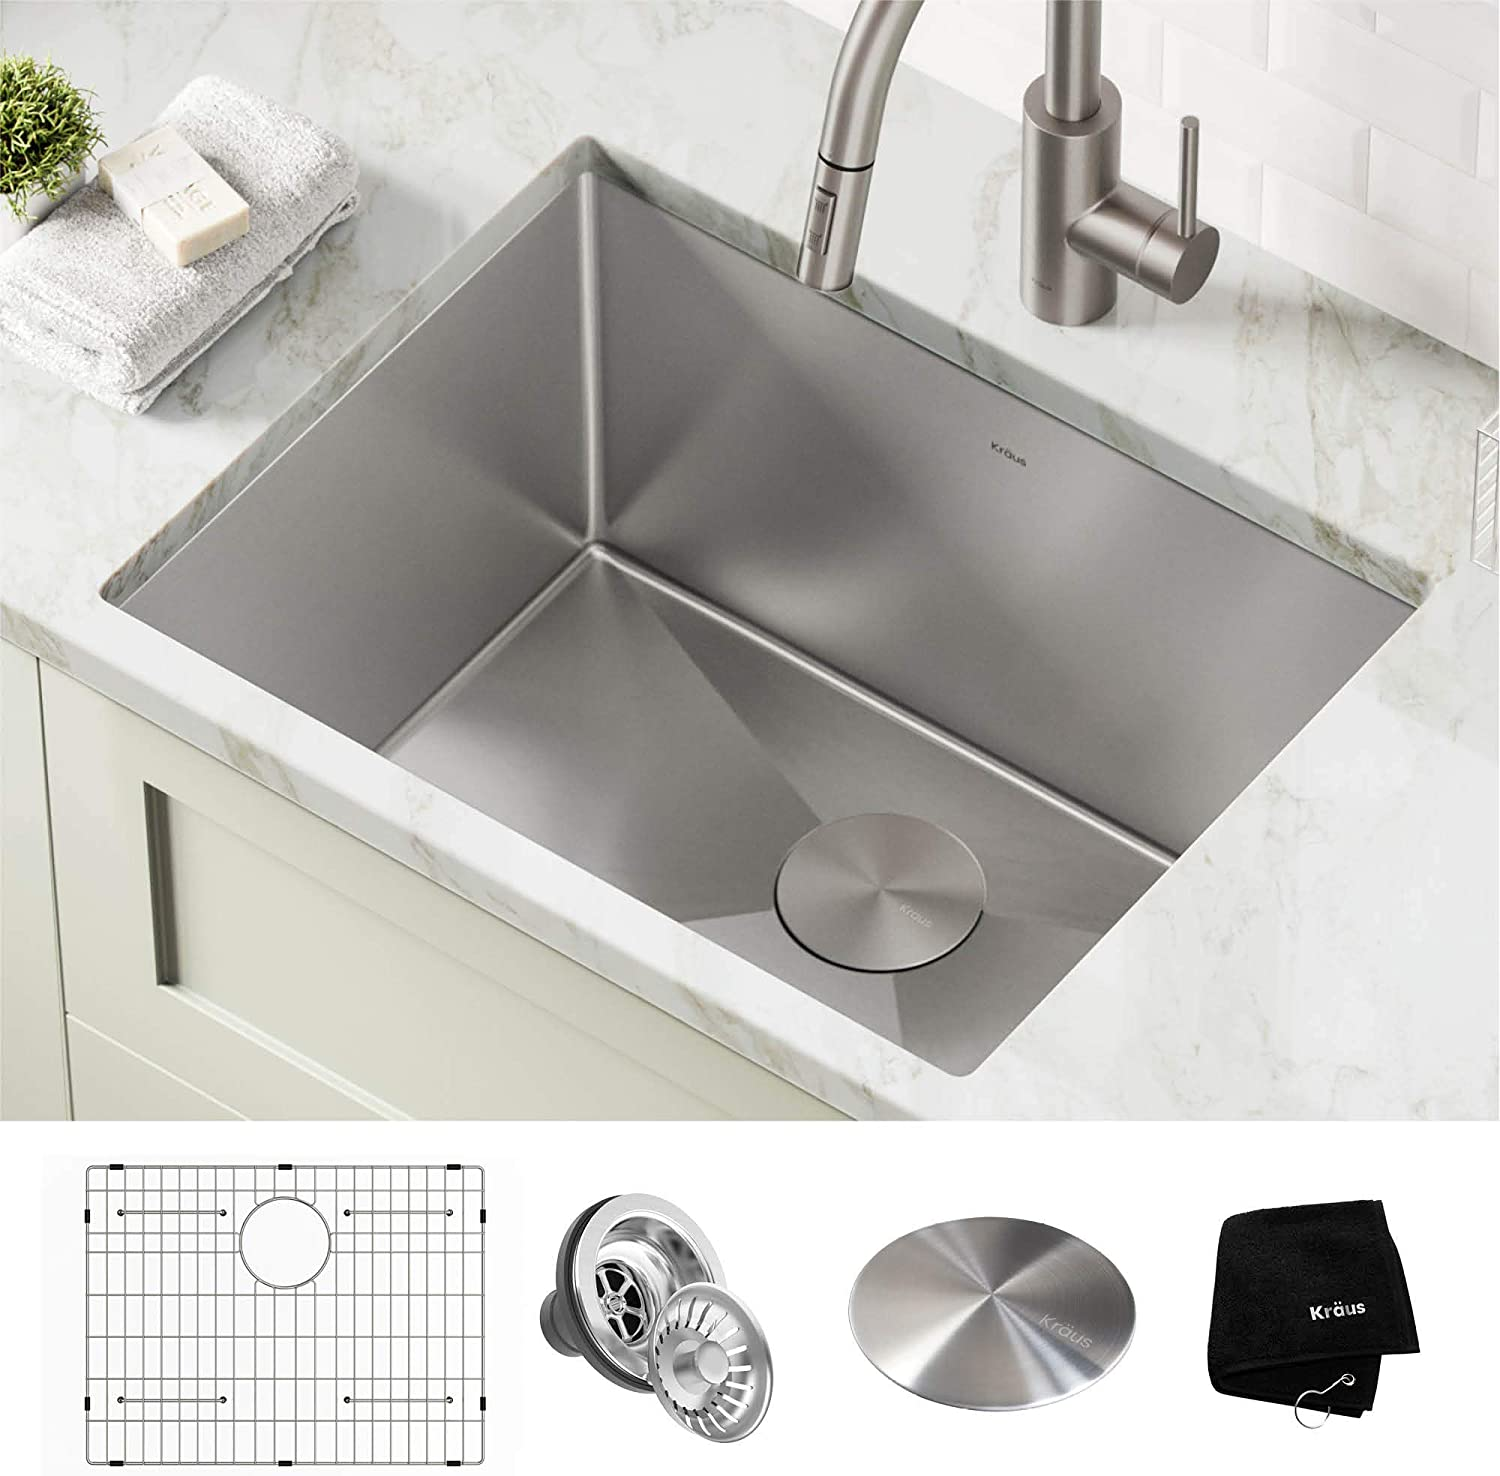 Kraus KHU101-24L Standart PRO 24-inch Undermount 16 Gauge Single Bowl Laundry and Utility Sink, Stainless Steel Extra Deep